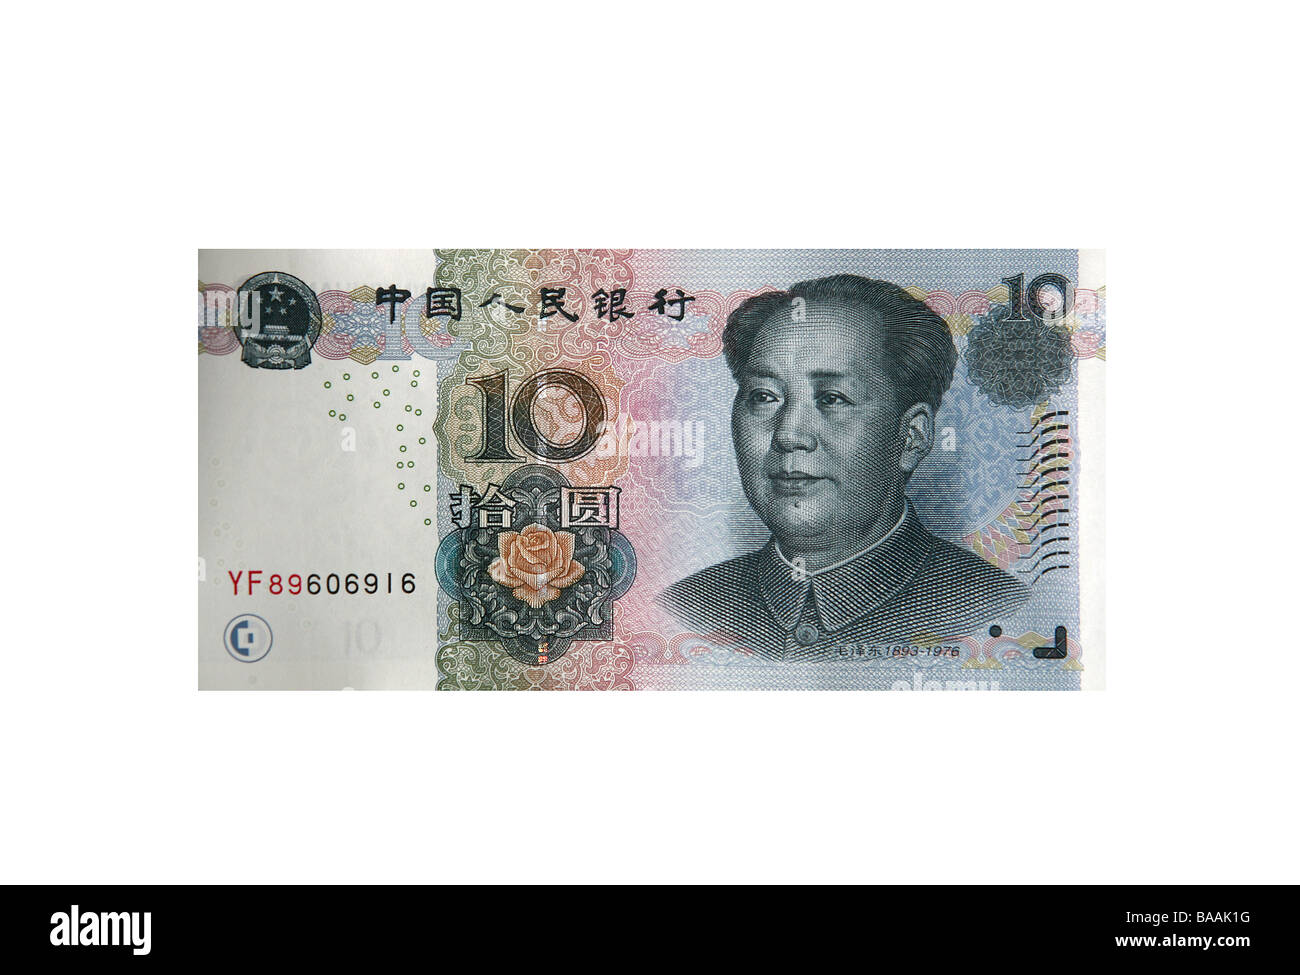 Chinese 10 RMB note cut out - Stock Image